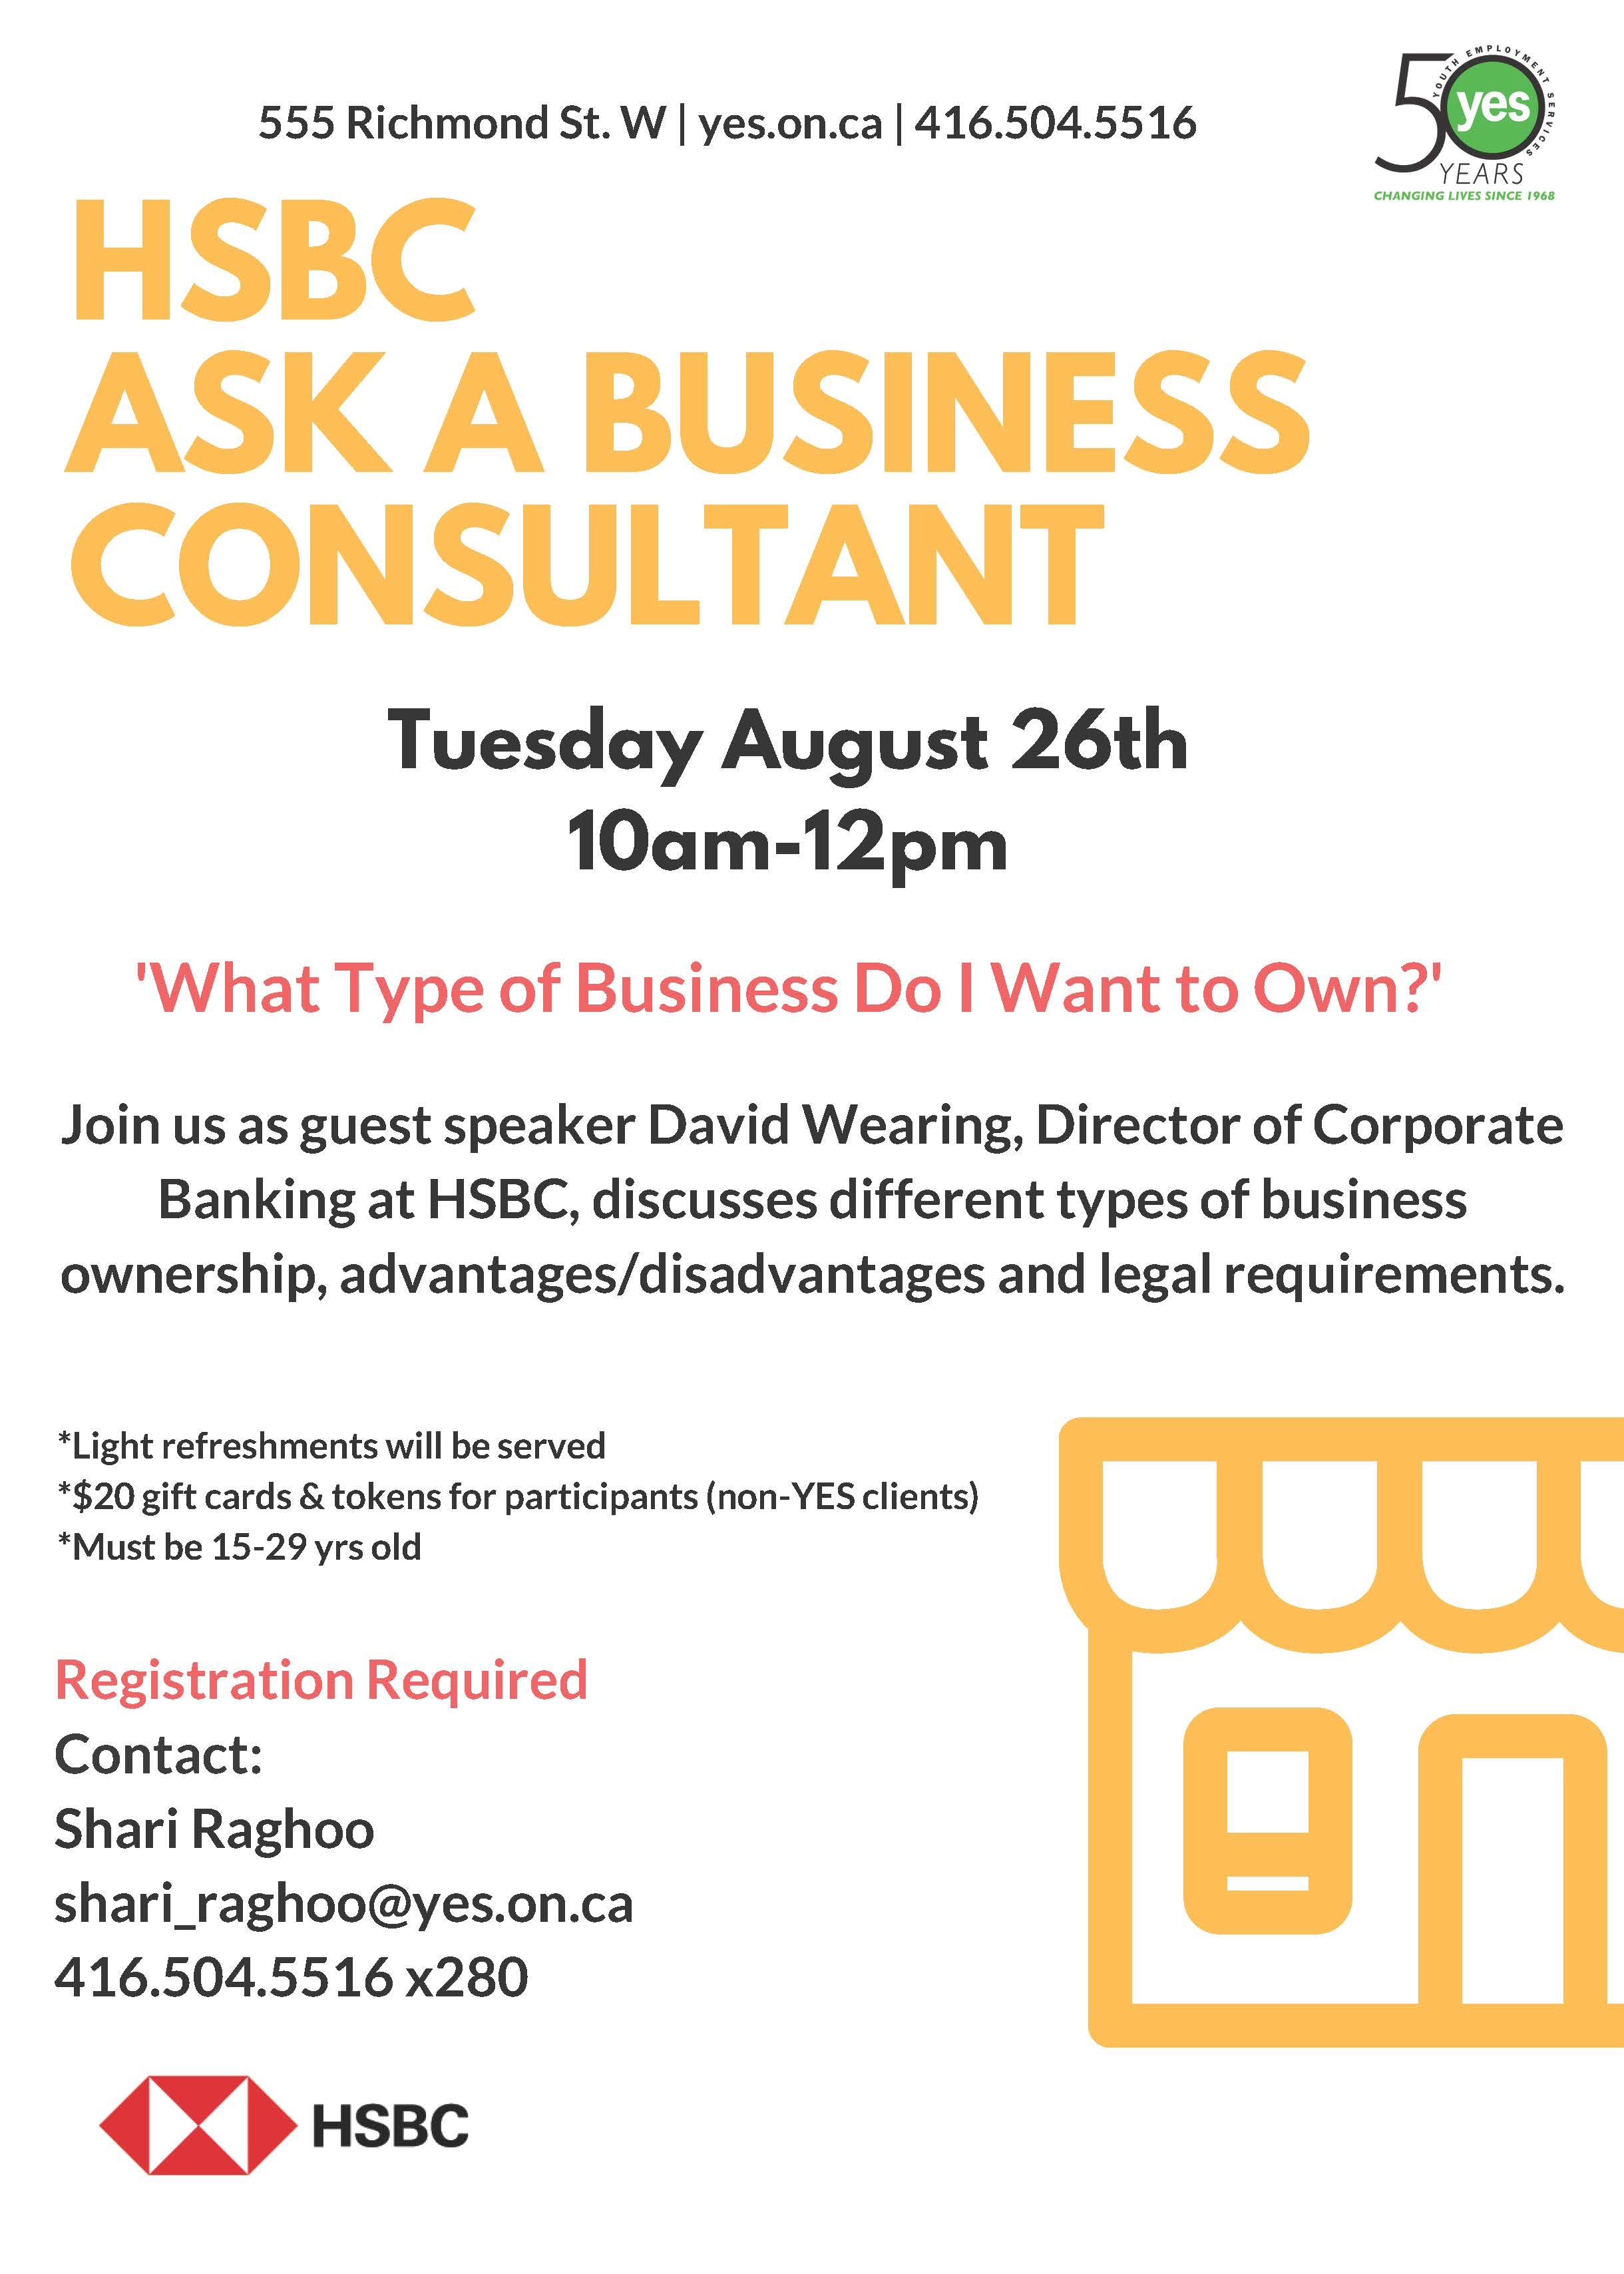 HSBC Ask a Business Consultant Session: 'What Type of Business Do I Want to Own?' @ YES